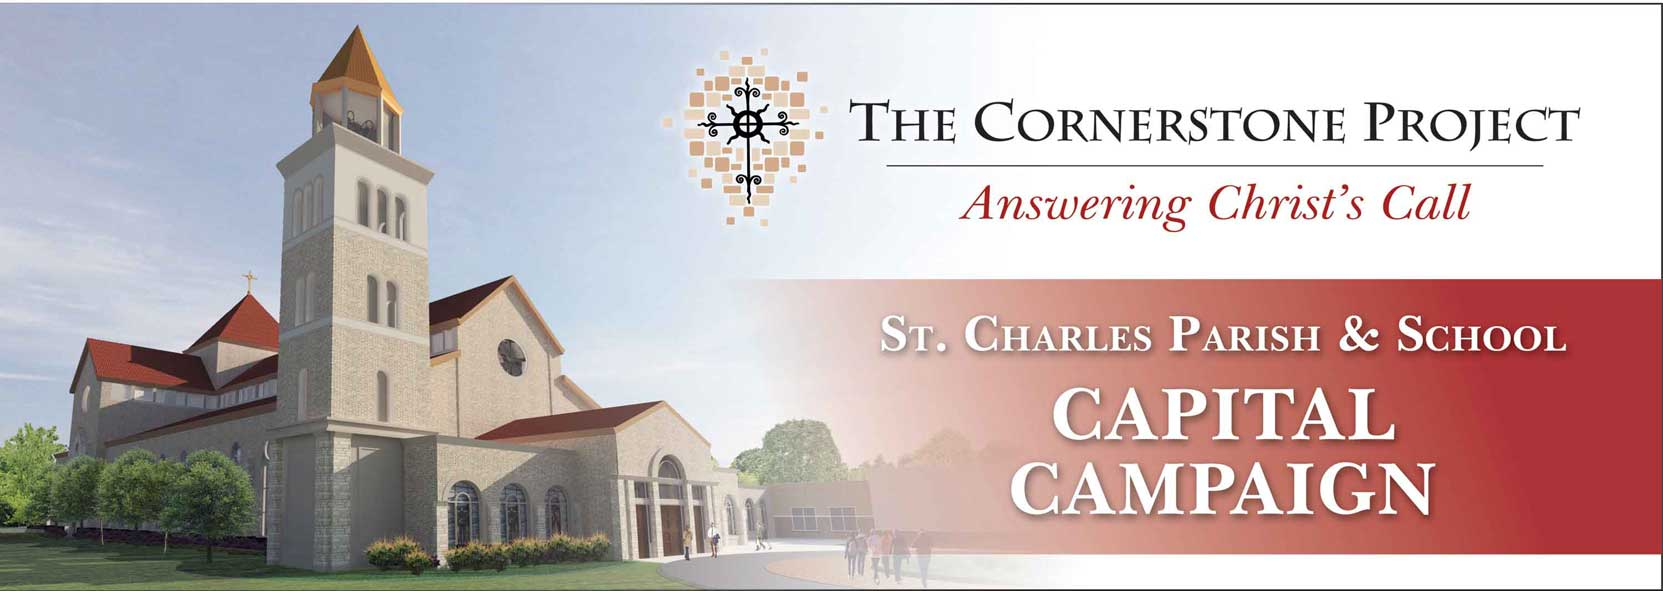 St. Charles Capital Campaign 2016 - The Cornerstone Project